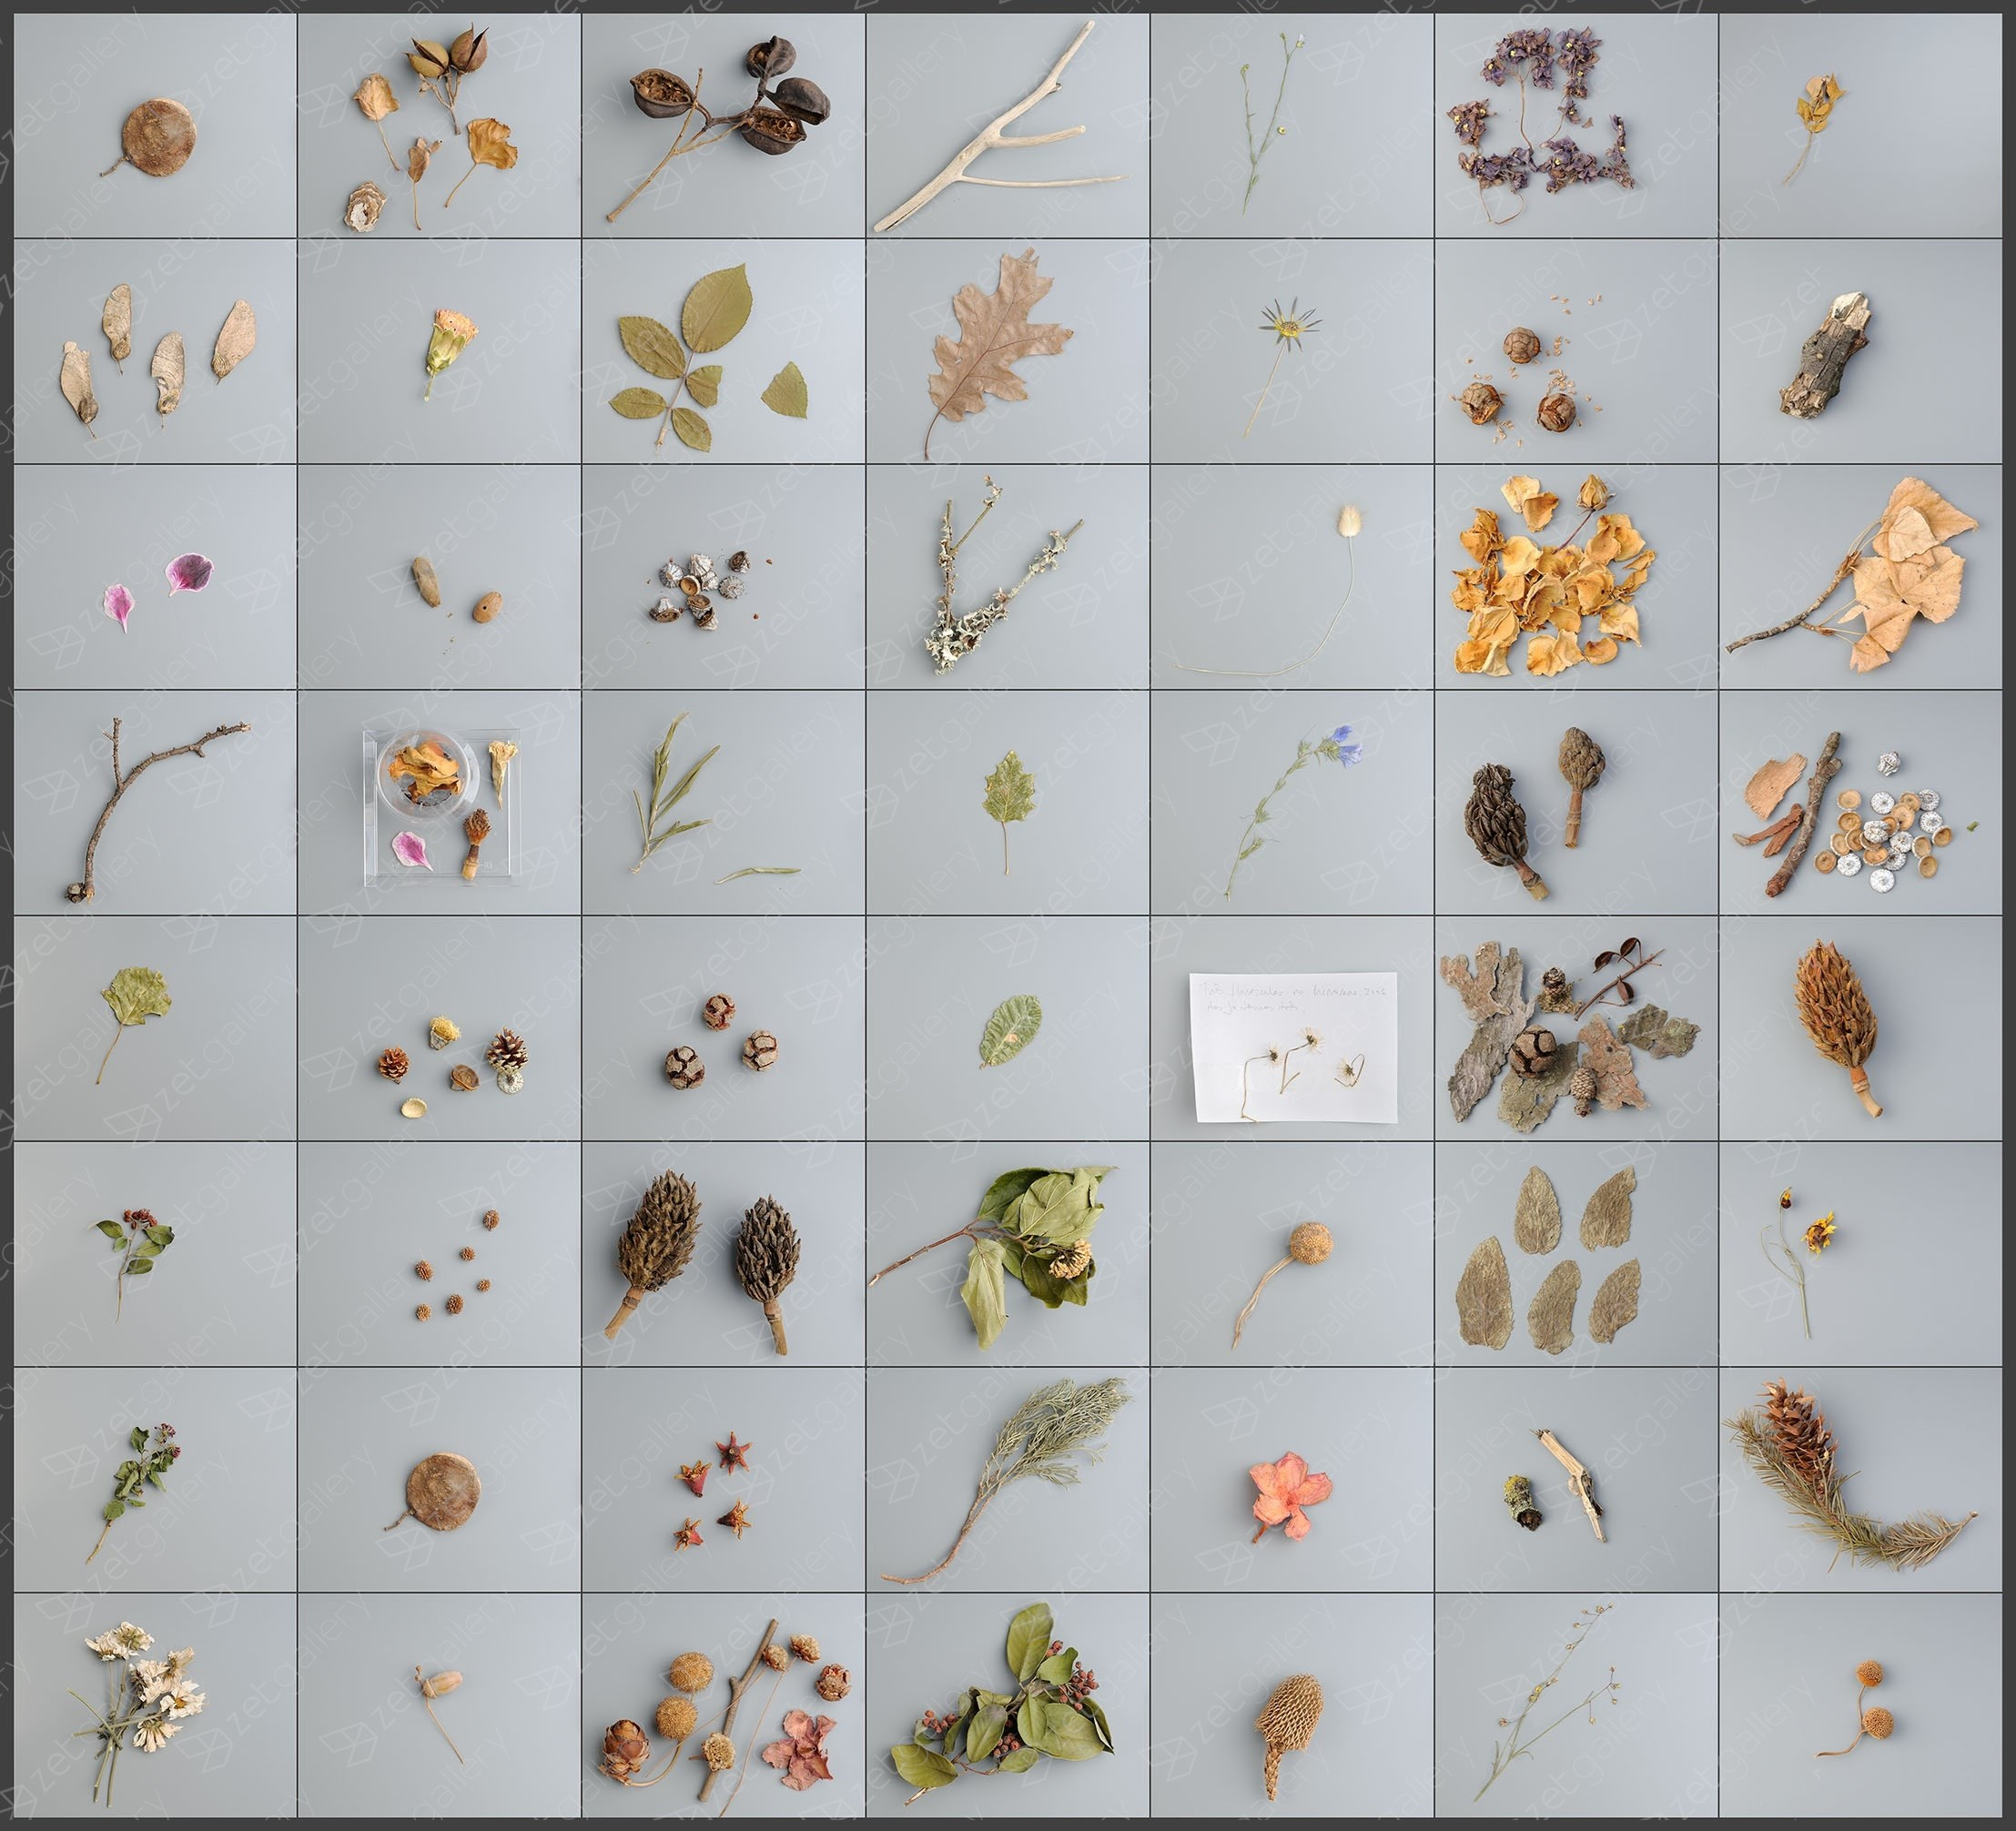 55 field collections + 1 intervention from Lisbon public gardens, original Still Life Digital Photography by António Coelho